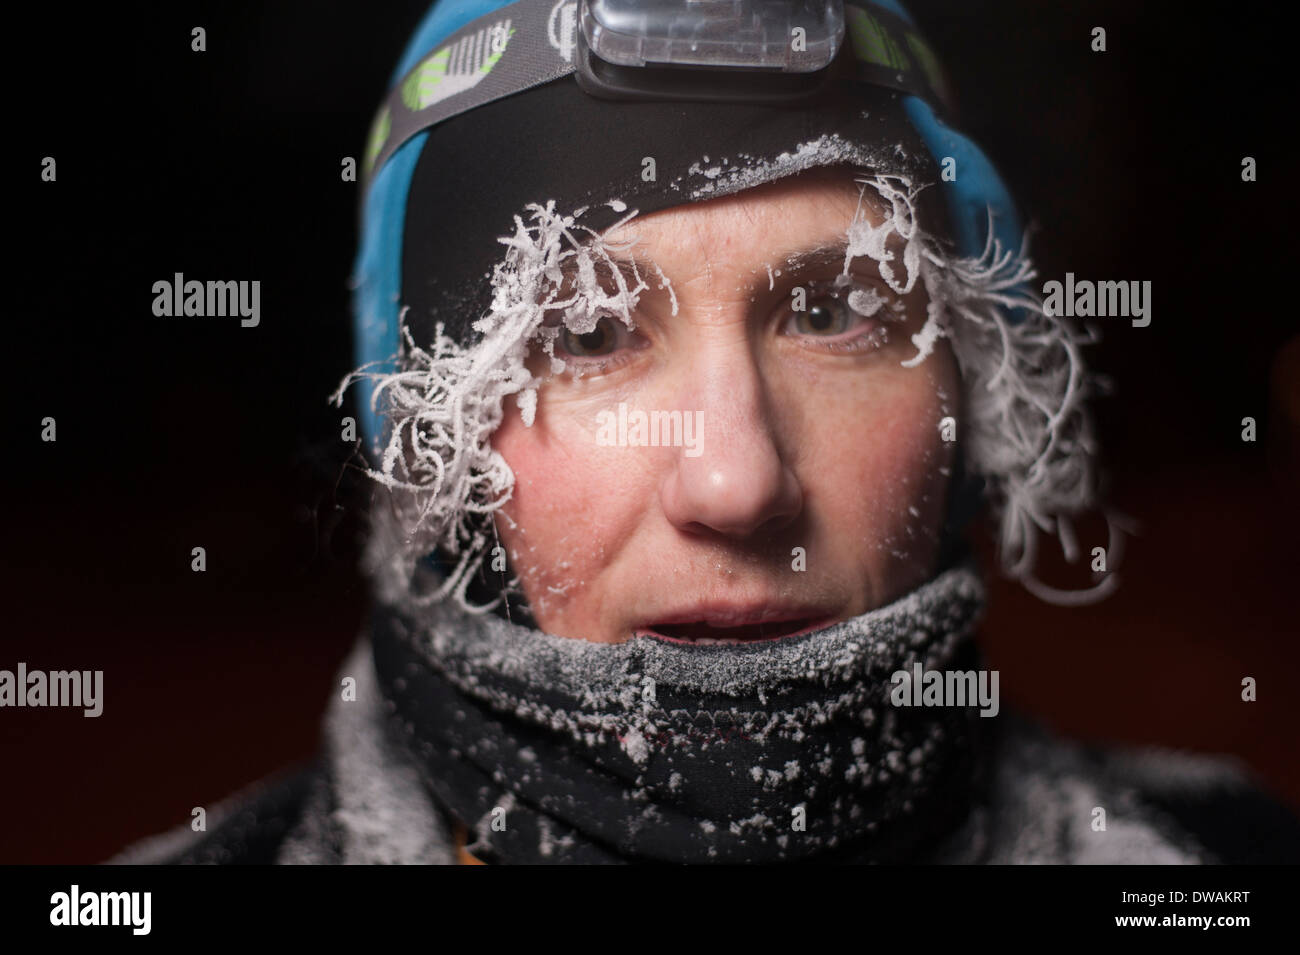 Night time portrait of an outdoors woman with frost on her face, hair and eyelashes - Stock Image